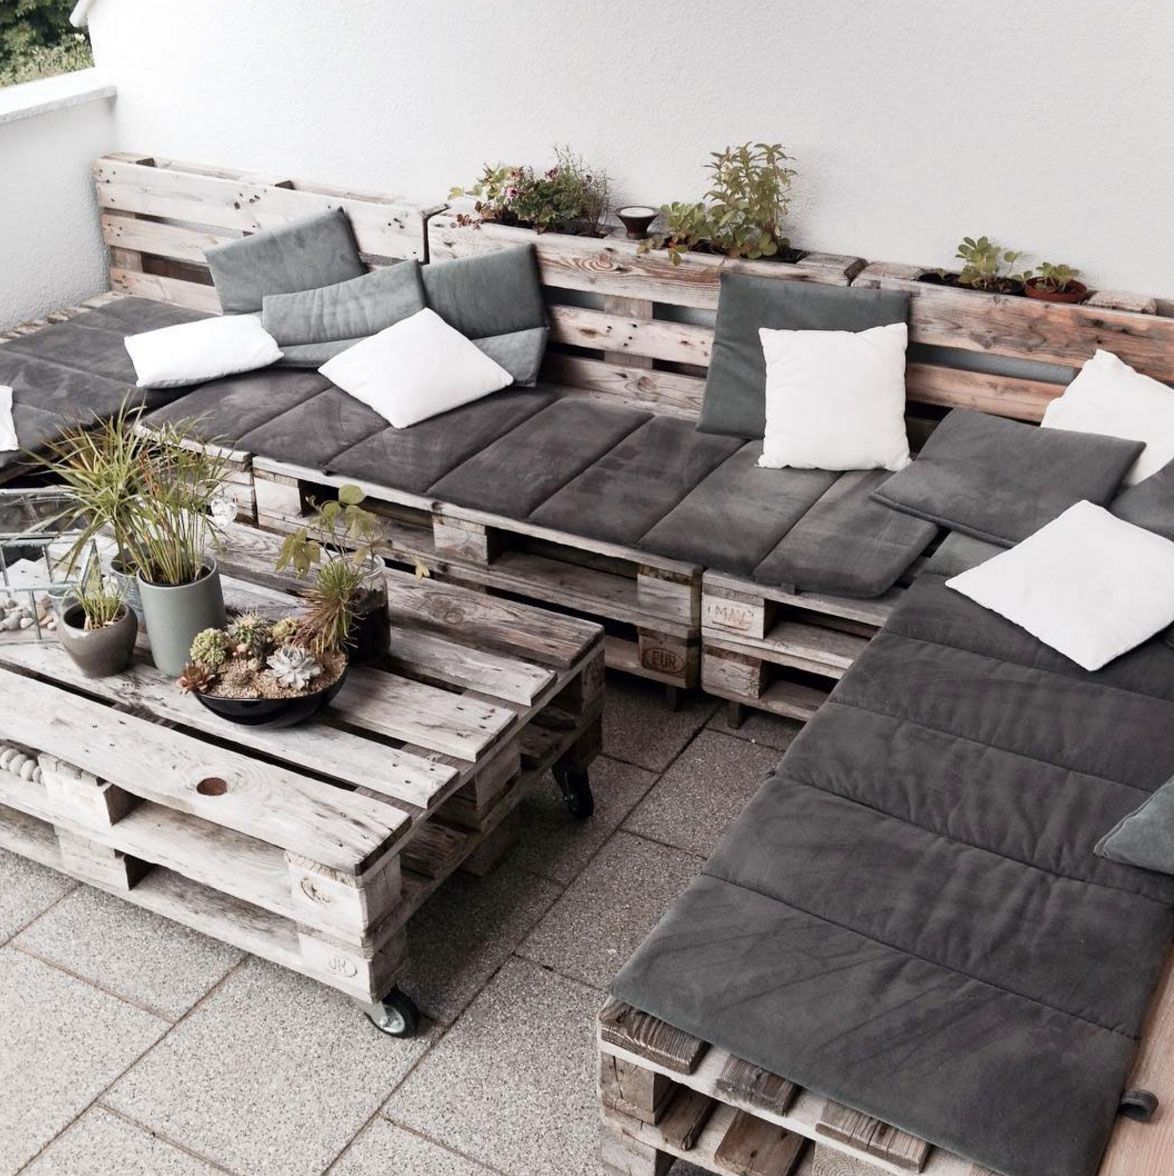 loungemoebel paletten selbst bauchen outdoor ideen terrasse m bel und einrichtung. Black Bedroom Furniture Sets. Home Design Ideas